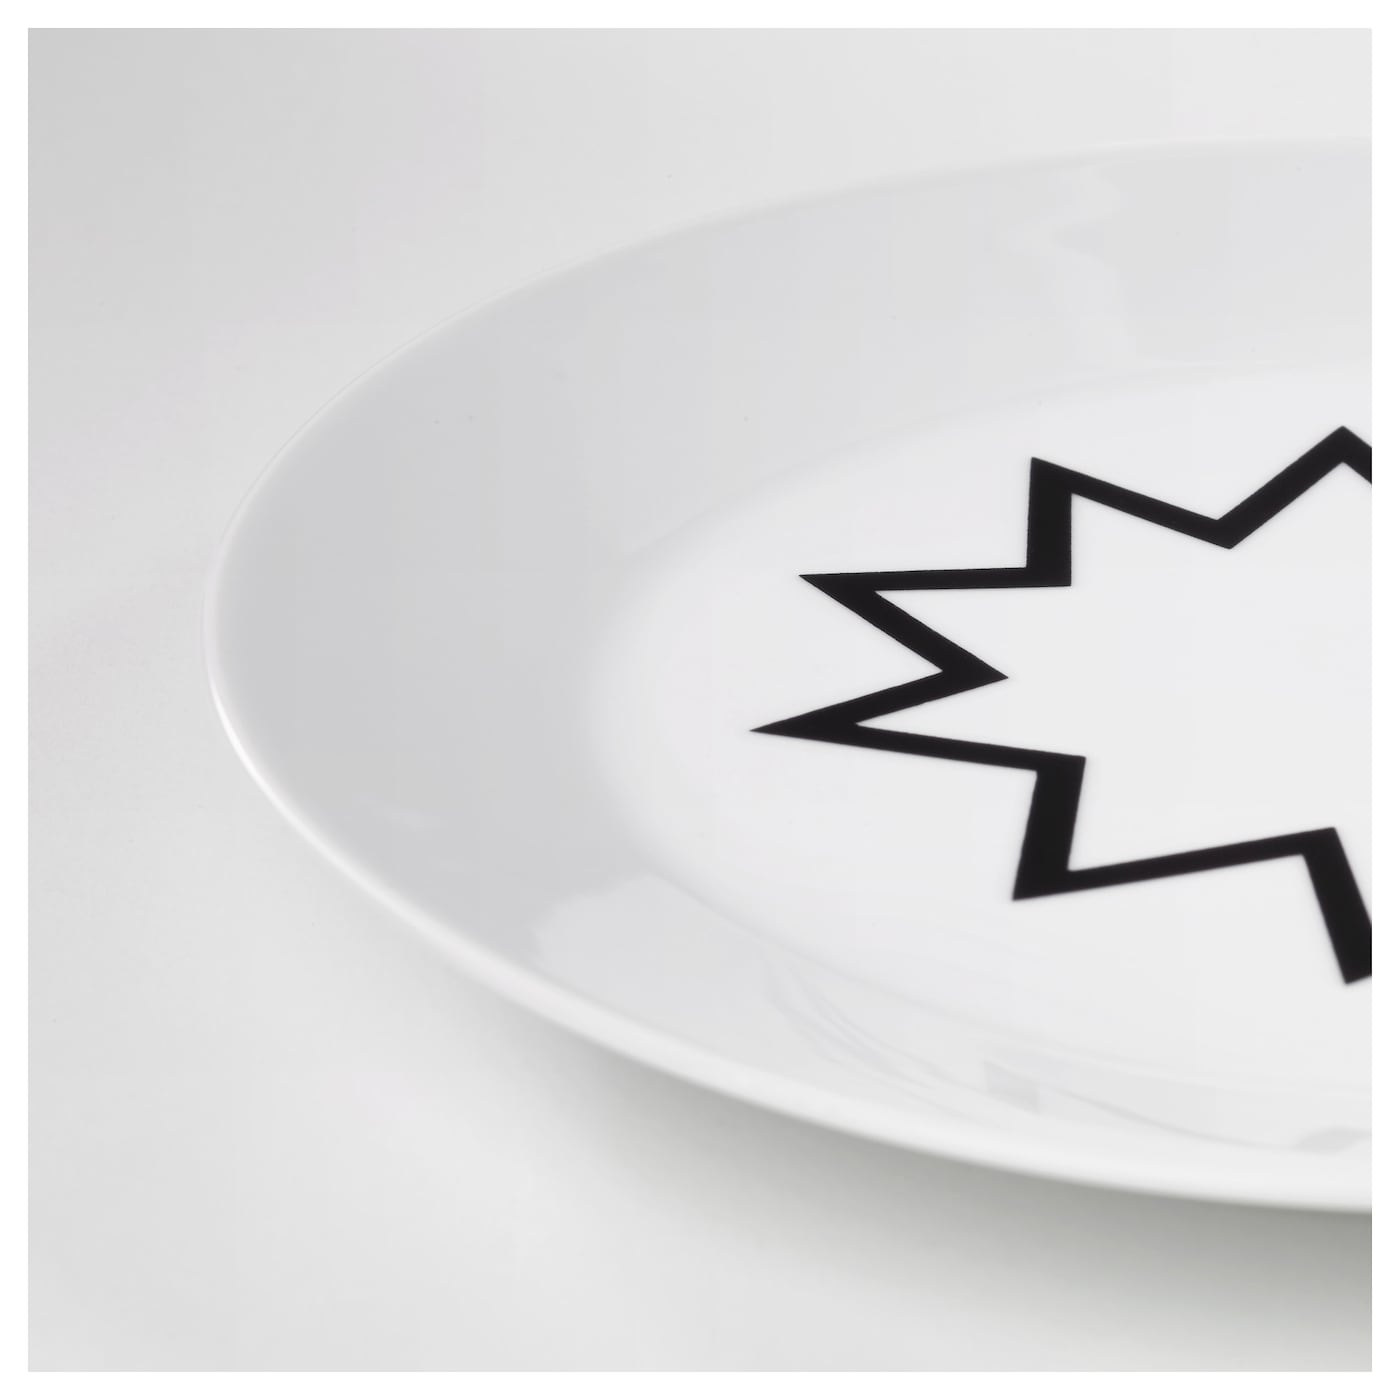 IKEA AVSIKTLIG plate Made of feldspar porcelain, which makes the plate impact resistant and durable.